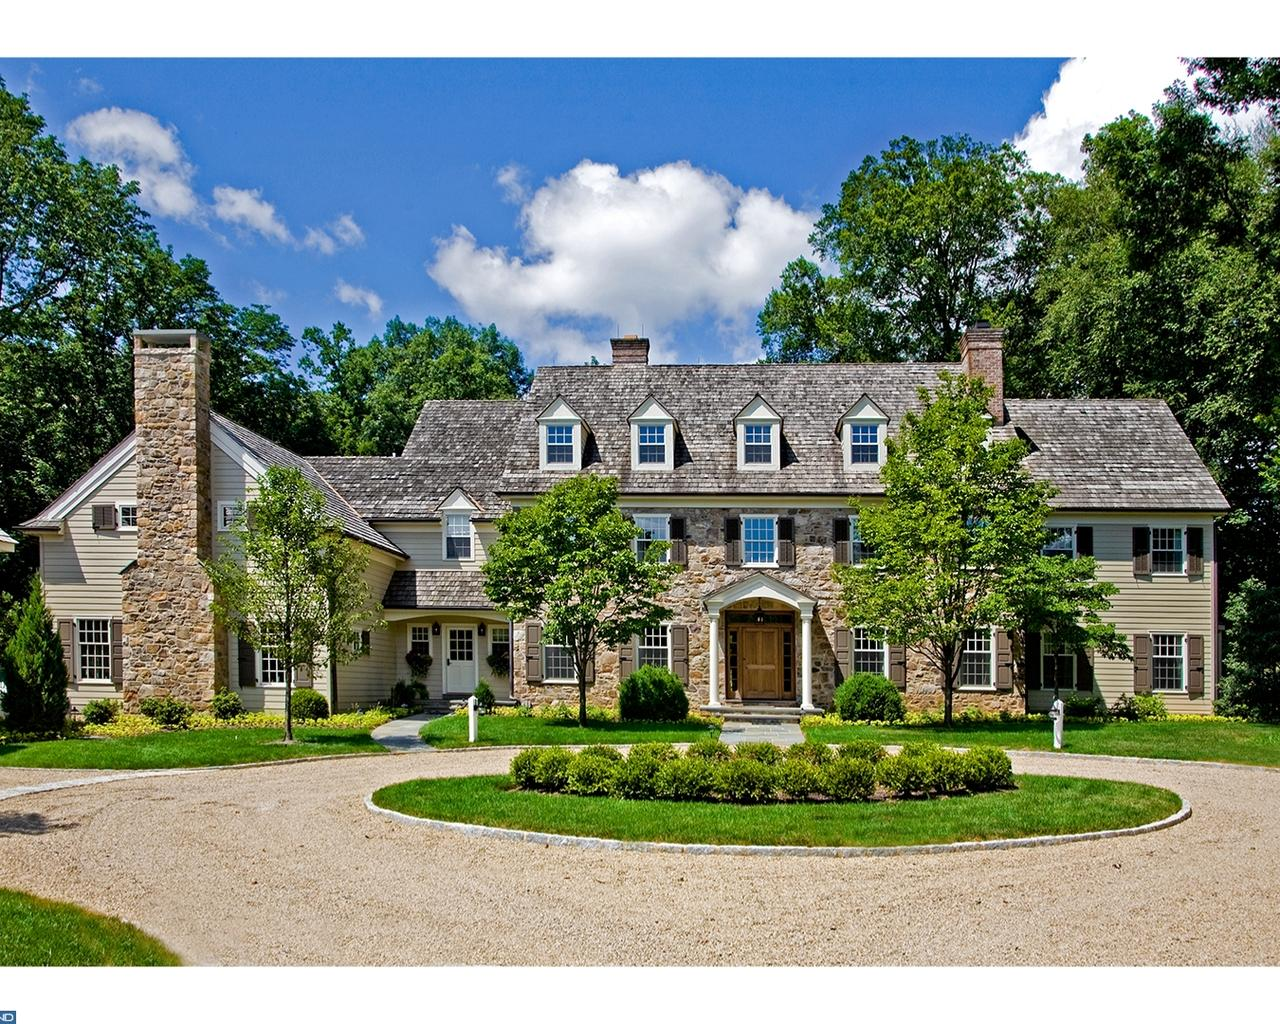 The Priciest Housing Markets in Pennsylvania